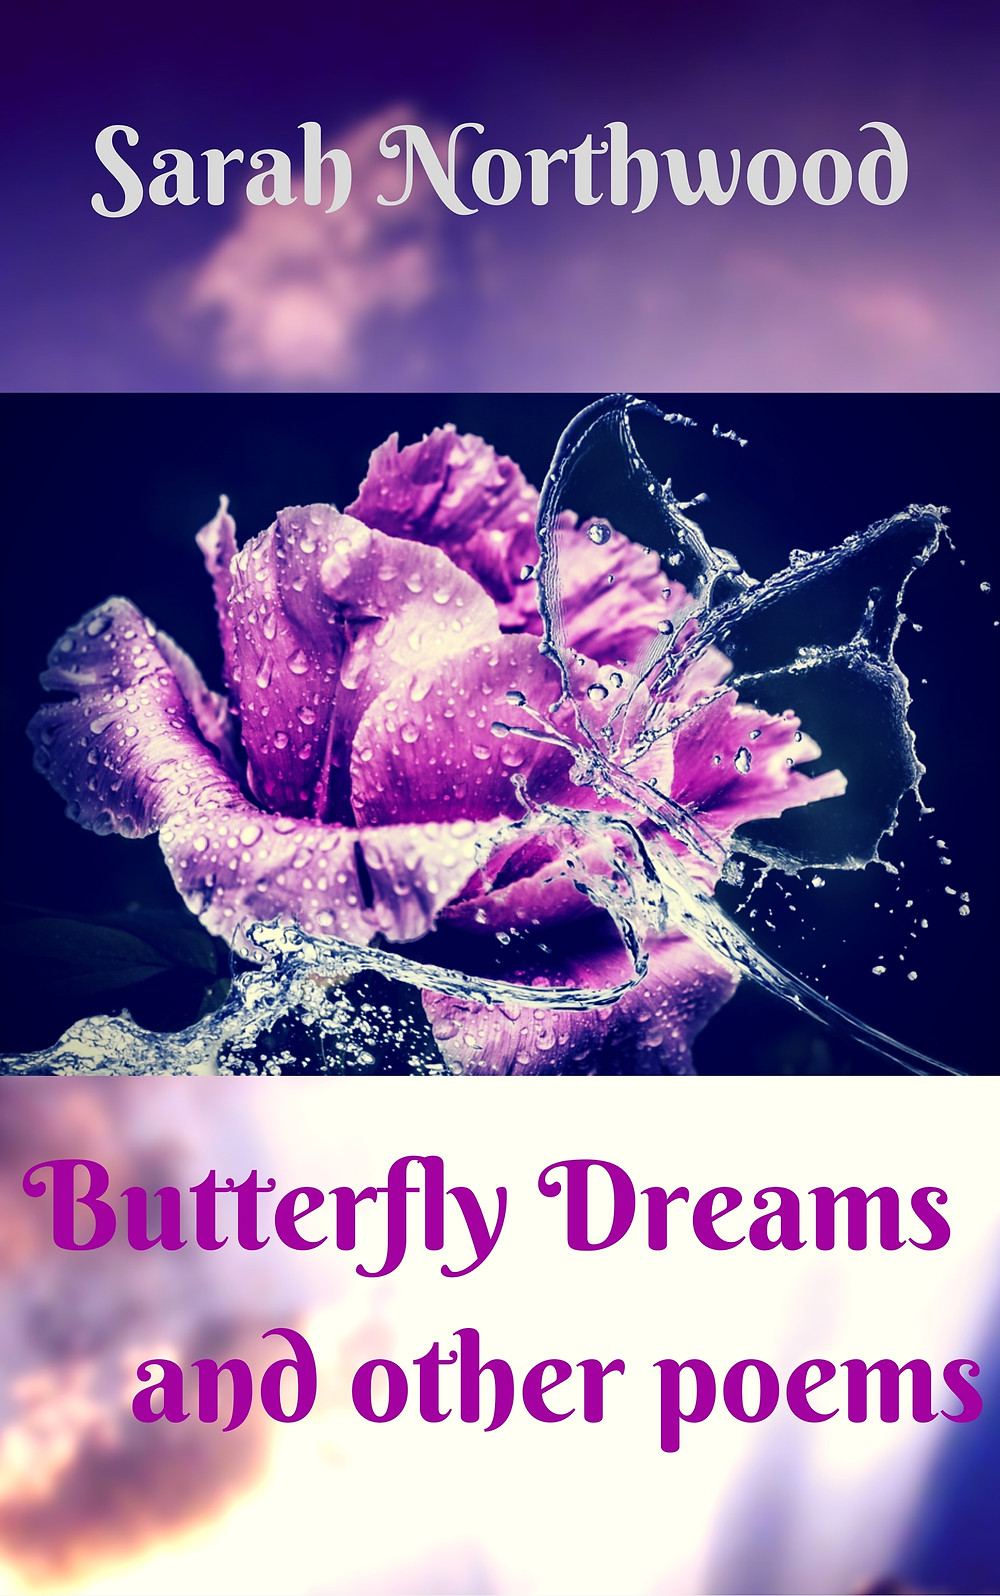 Butterfly Dreams IHIBRP Recommended read award